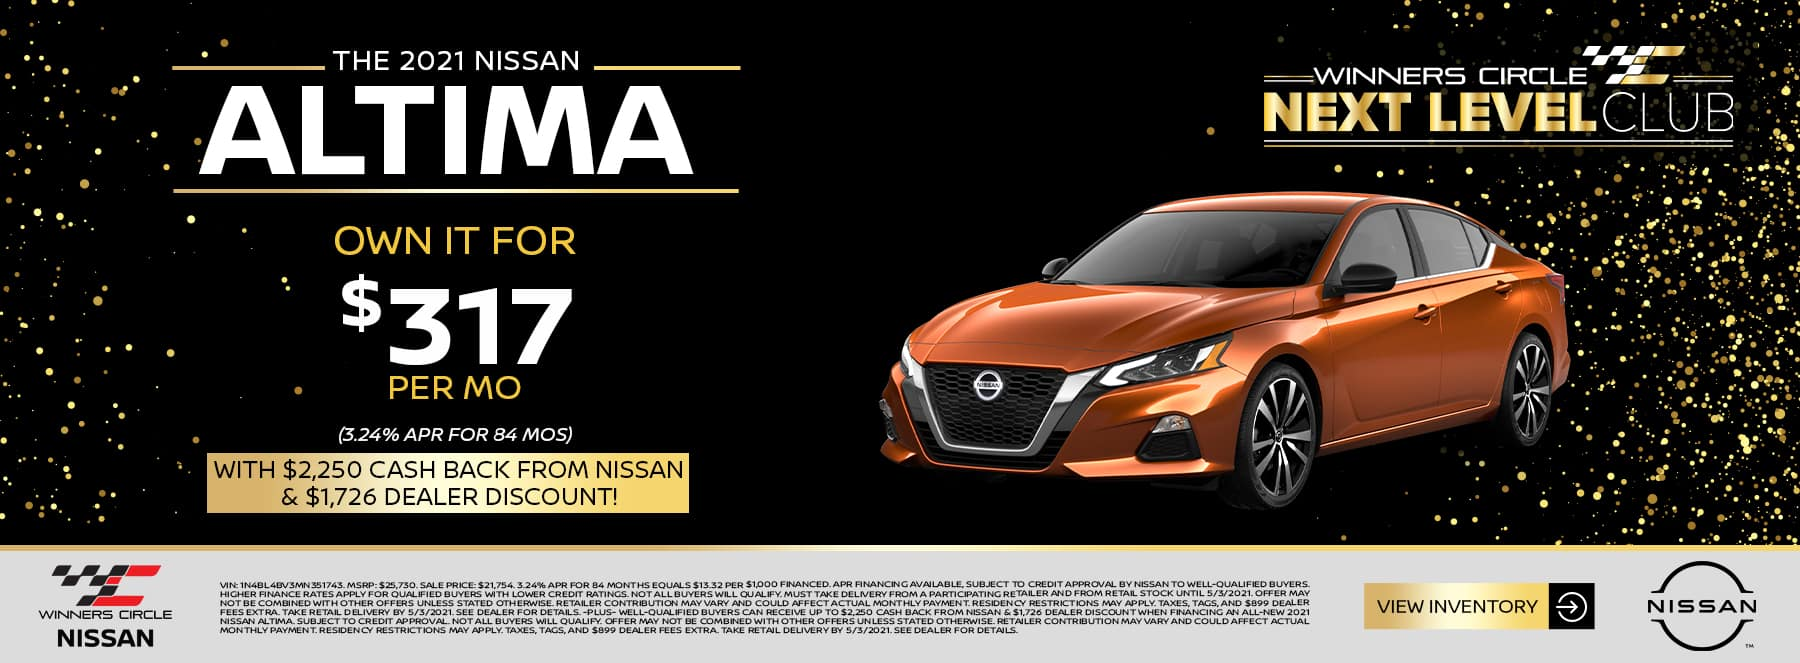 2021 Nissan Altima - Own it for $317 per month (3.24% APR for 84 months) with $2,250 cash back from Nissan & $1,726 dealer discount!